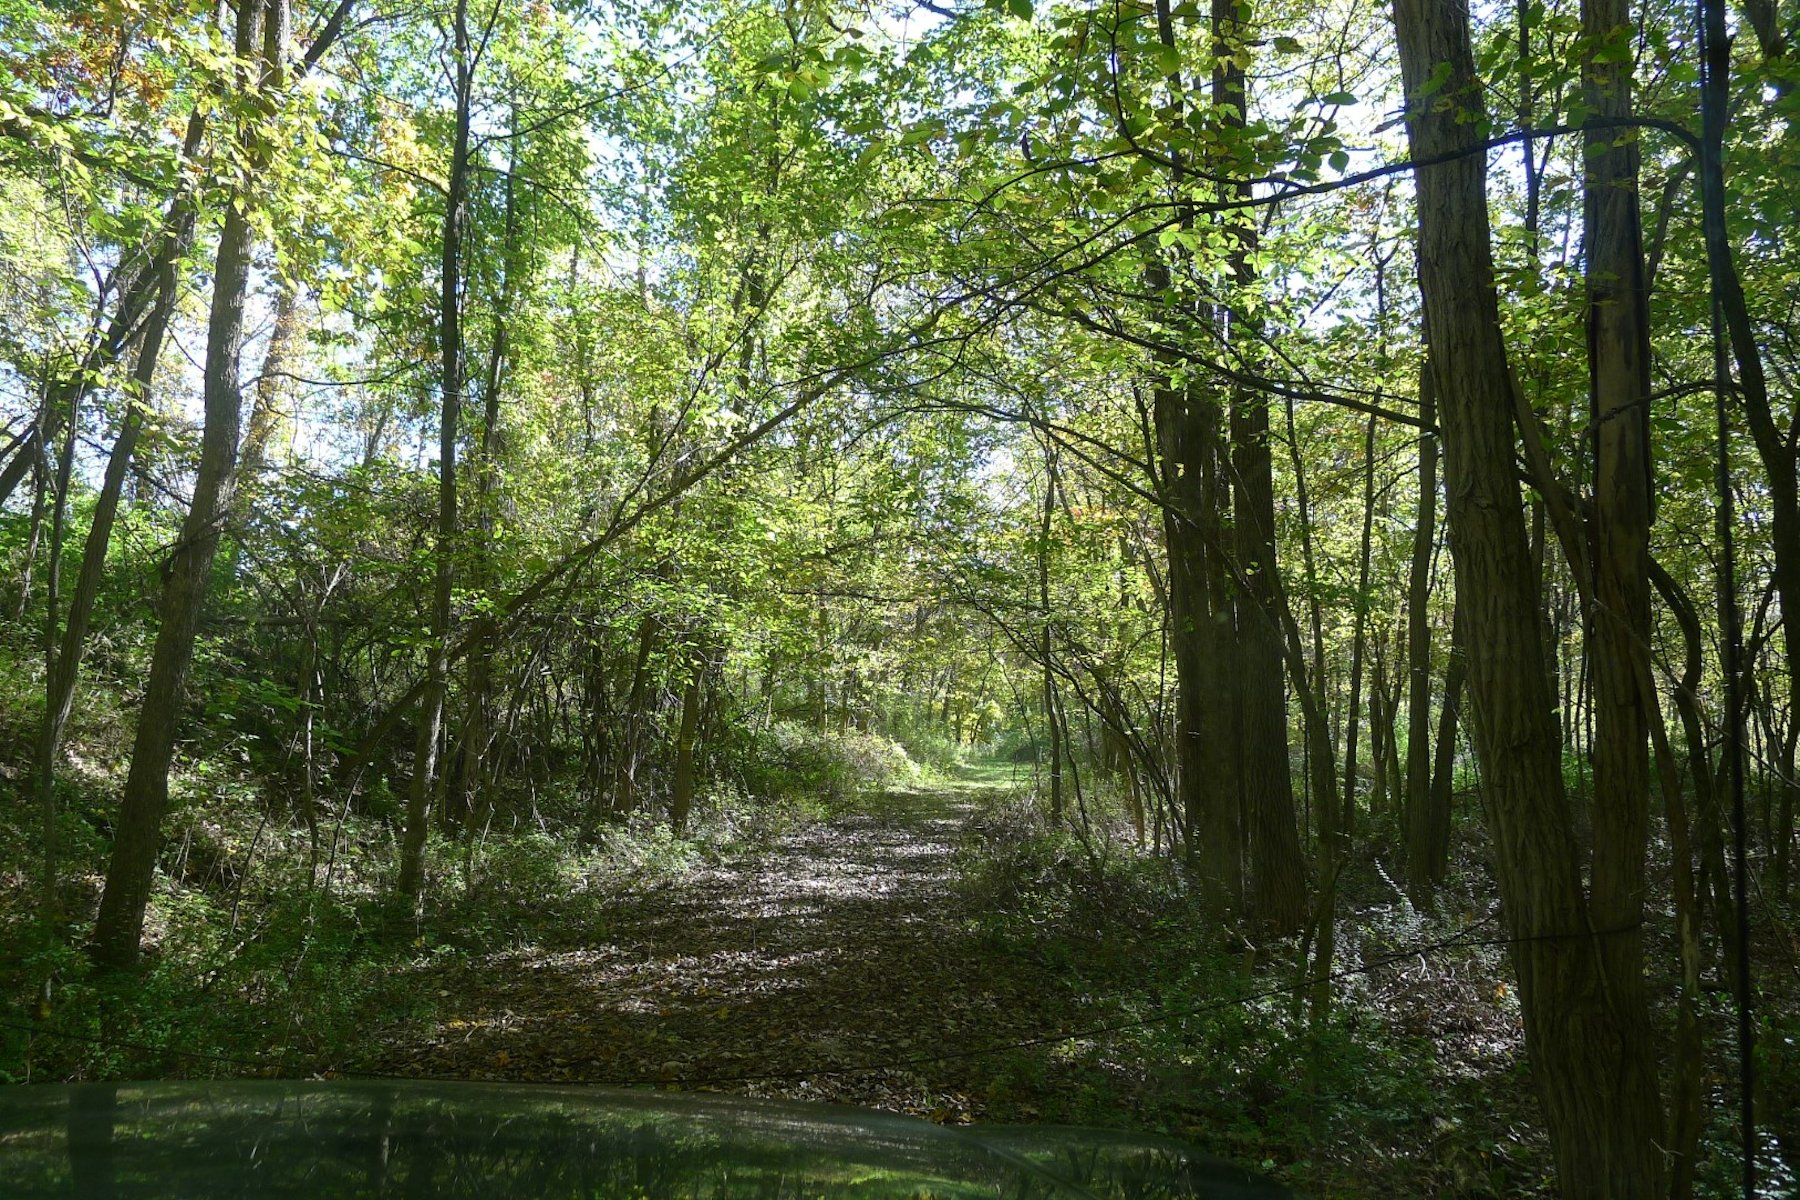 Land for Sale at Woodlands & Clearings Route 292 Pawling, New York 12564 United States